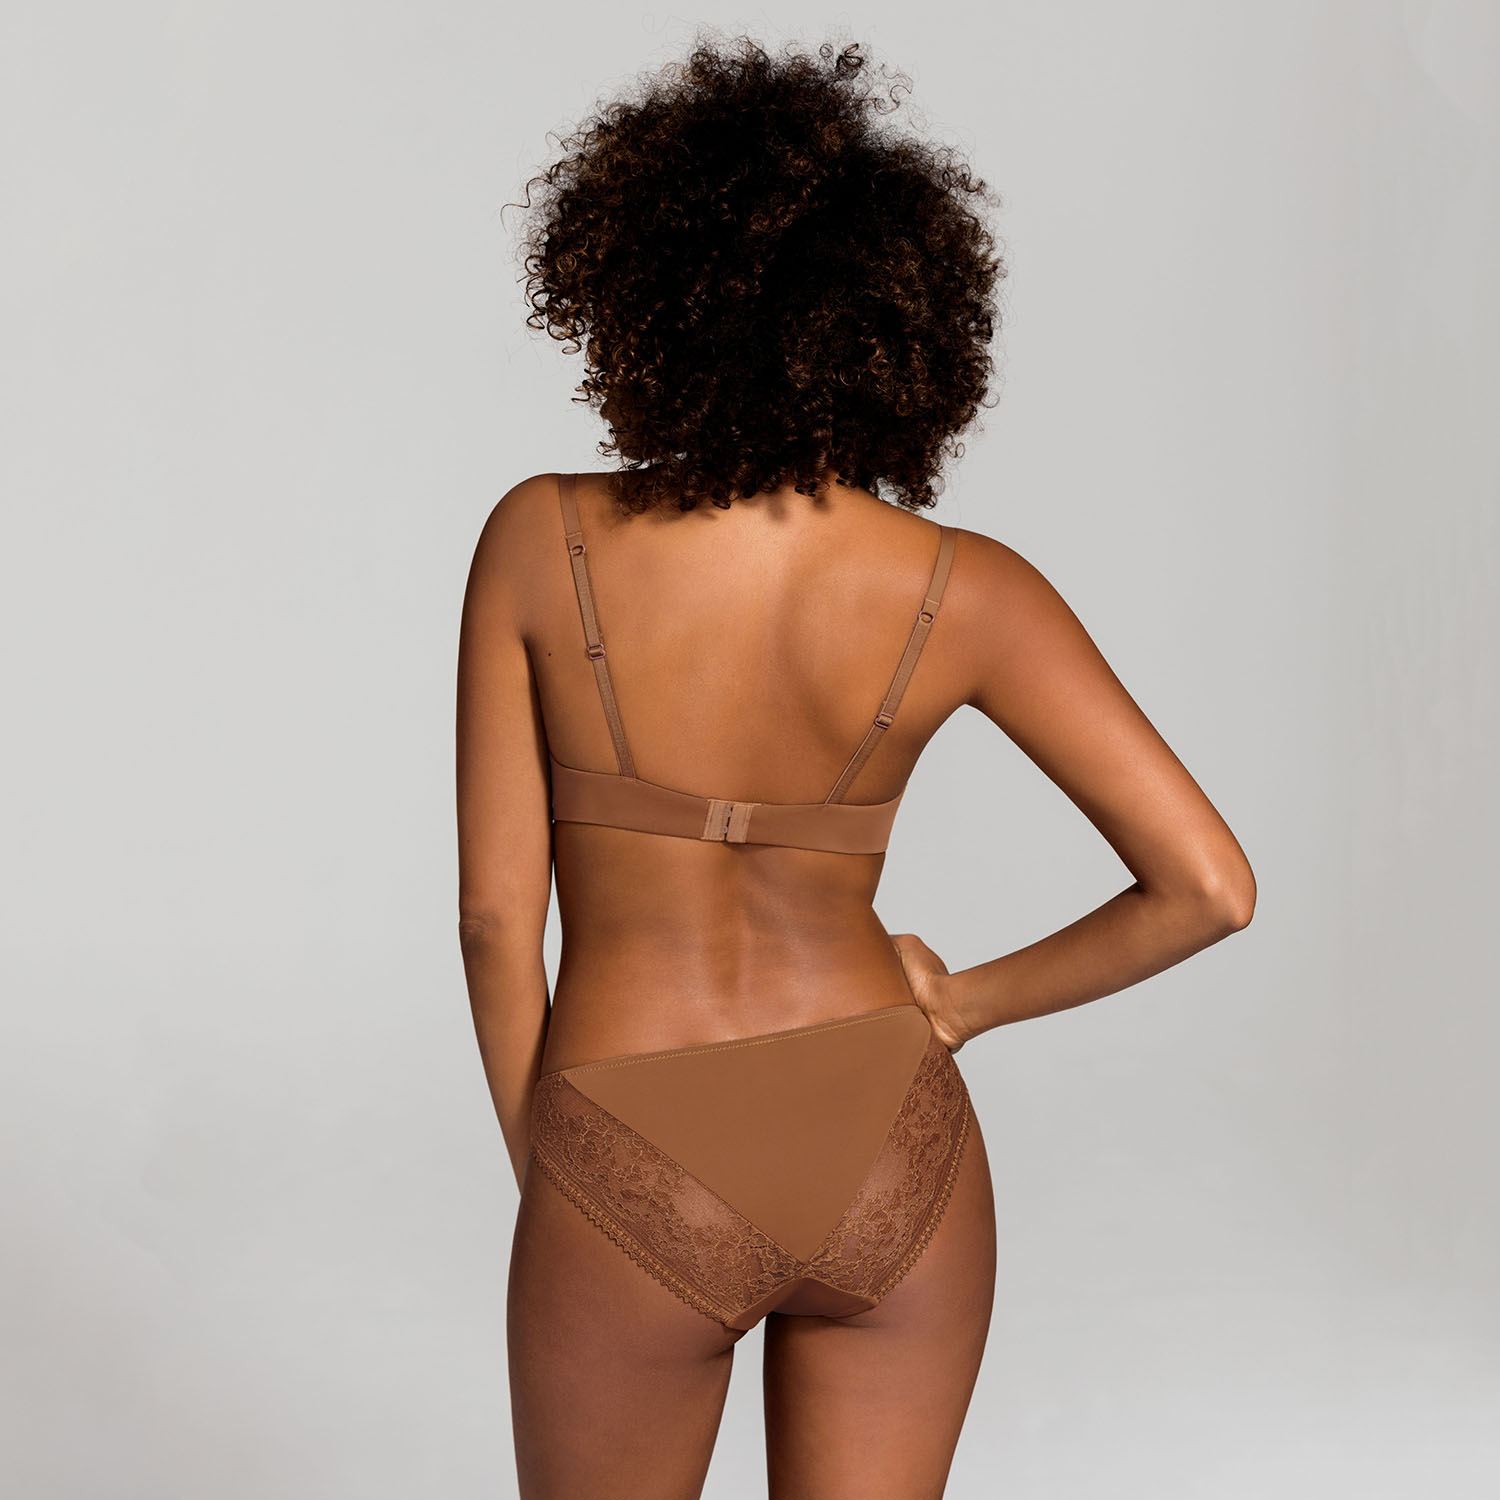 DORINA_Onbody_Isabelle_D17680A-B69_Non_Padded_Bra_D00566M-B69_Brief_Nude_Jackie_B